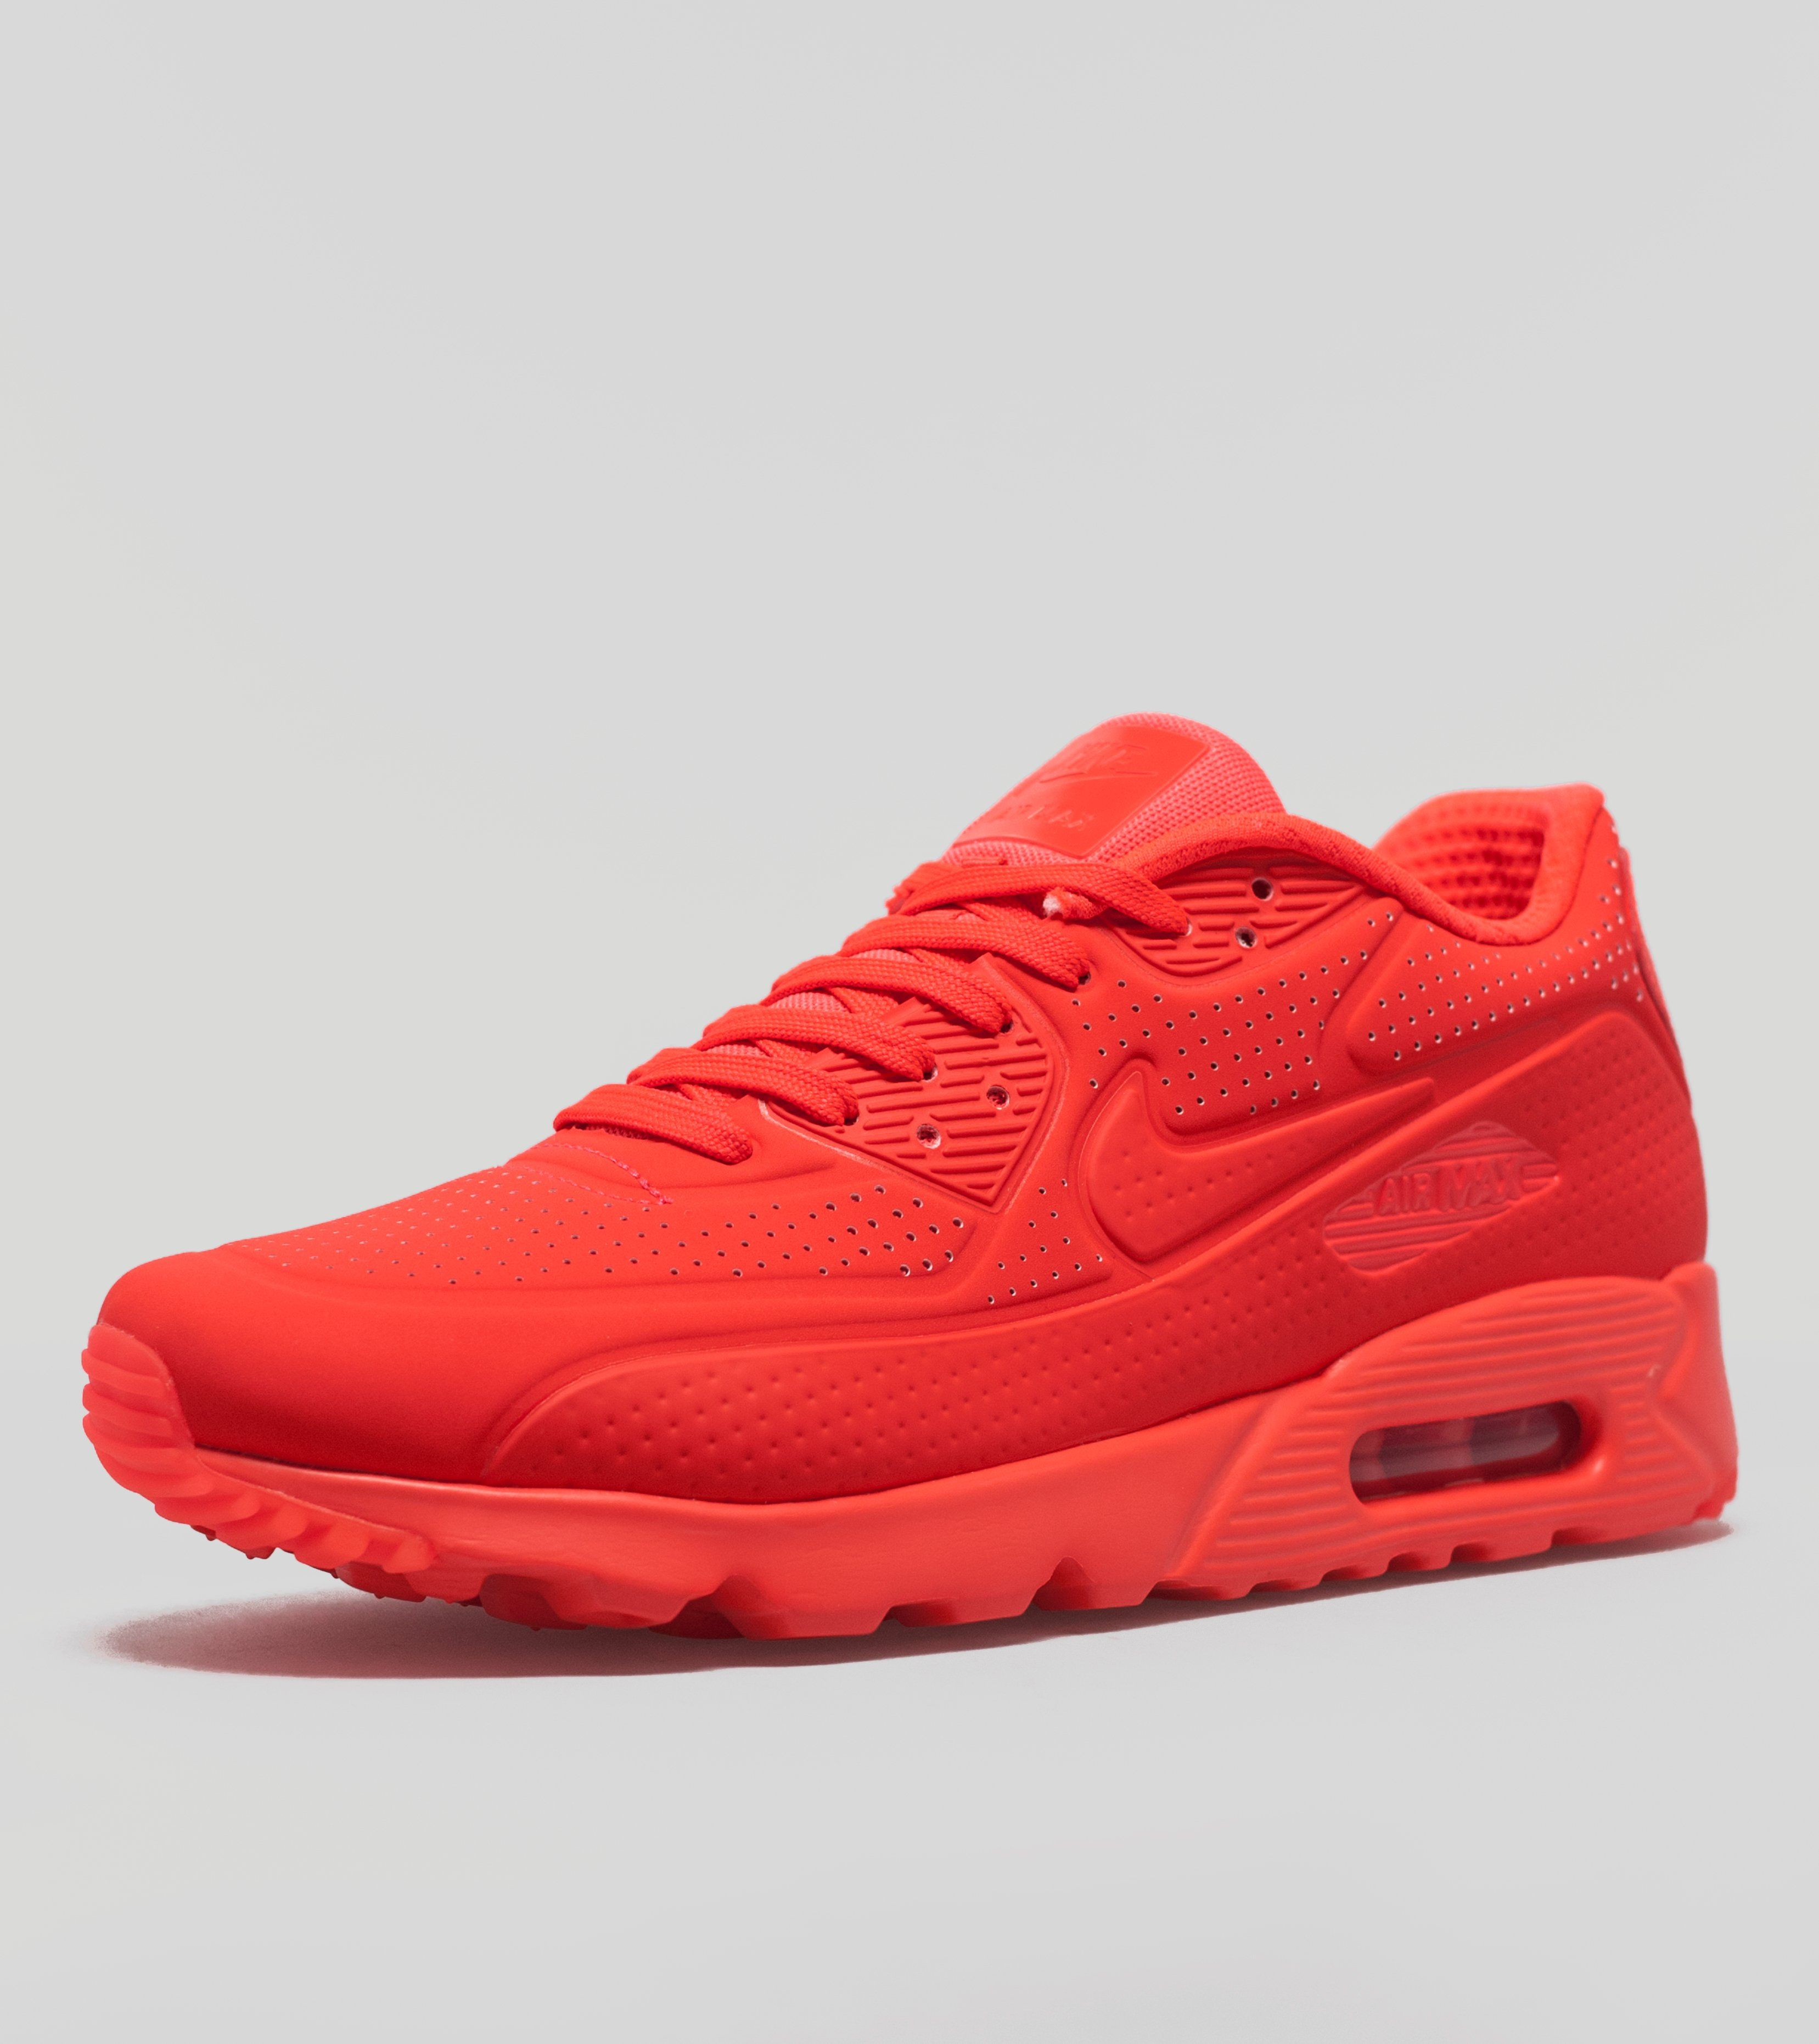 detailed look e48a2 35cd9 Nike Air Max 90 Ultra Moire   Size